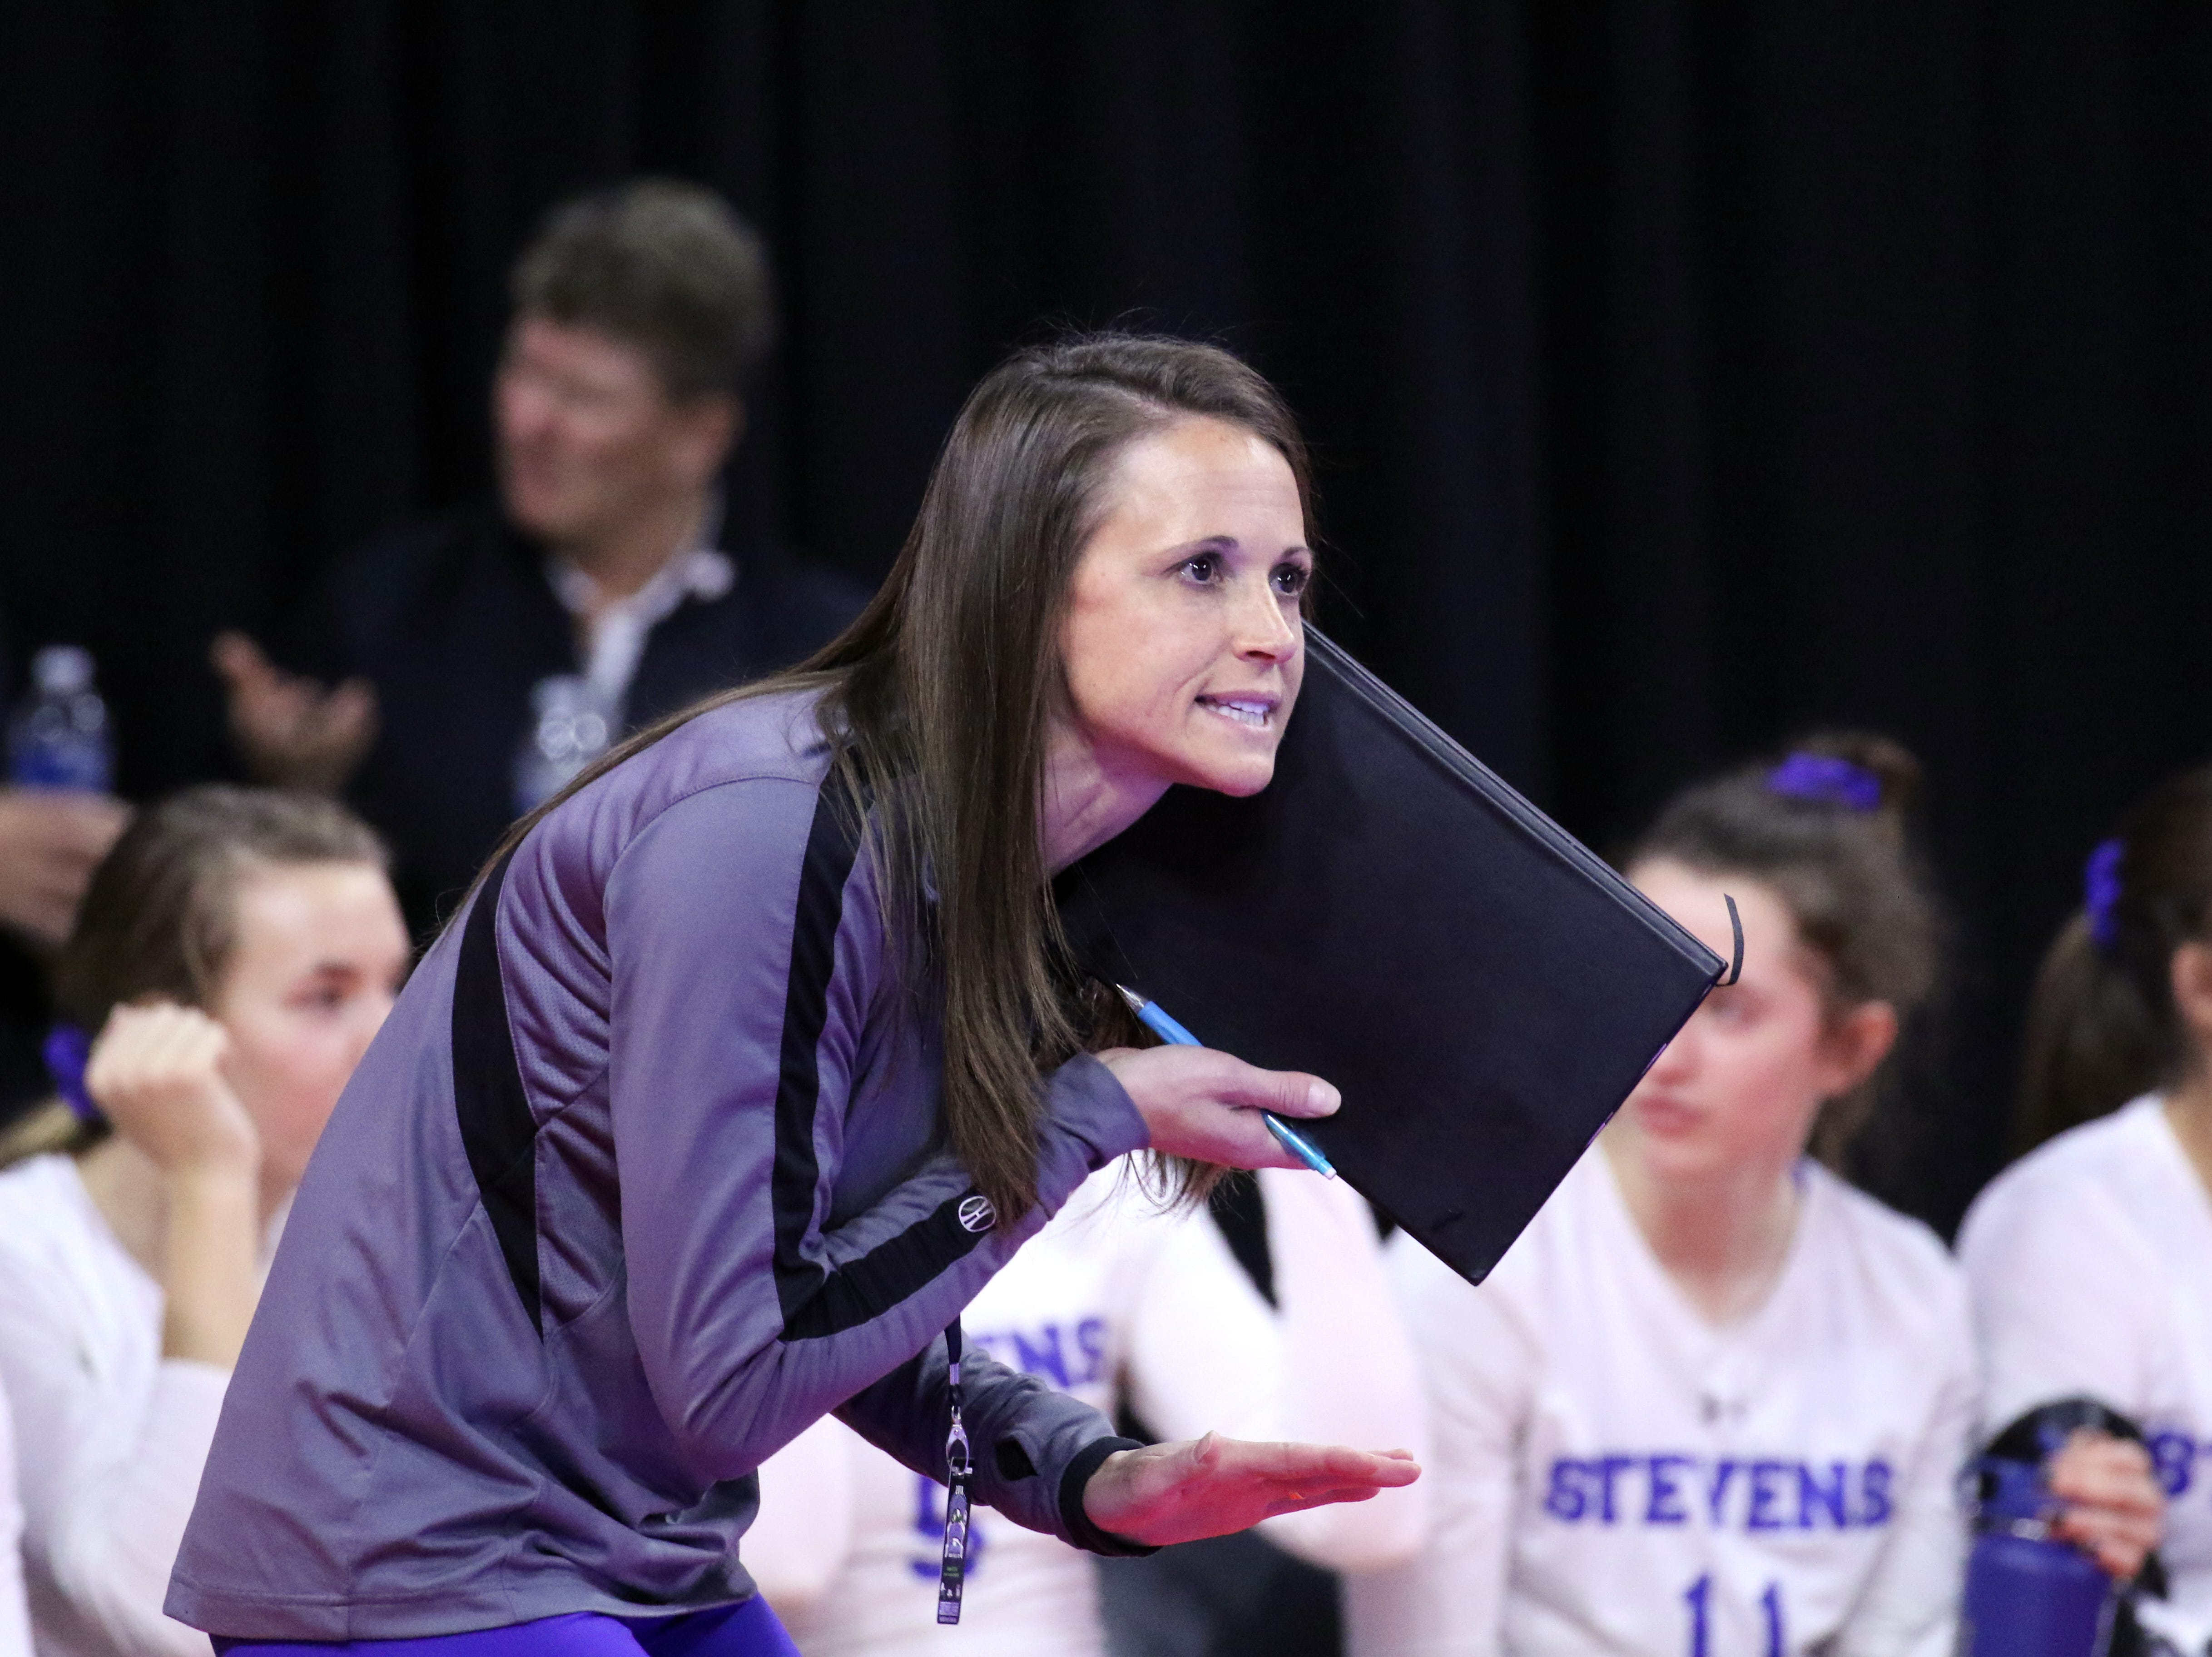 Rapid City Stevens head coach Kylie Voorhees gives instructions to her players during Thursday's opening match with Brookings in Sioux Falls.